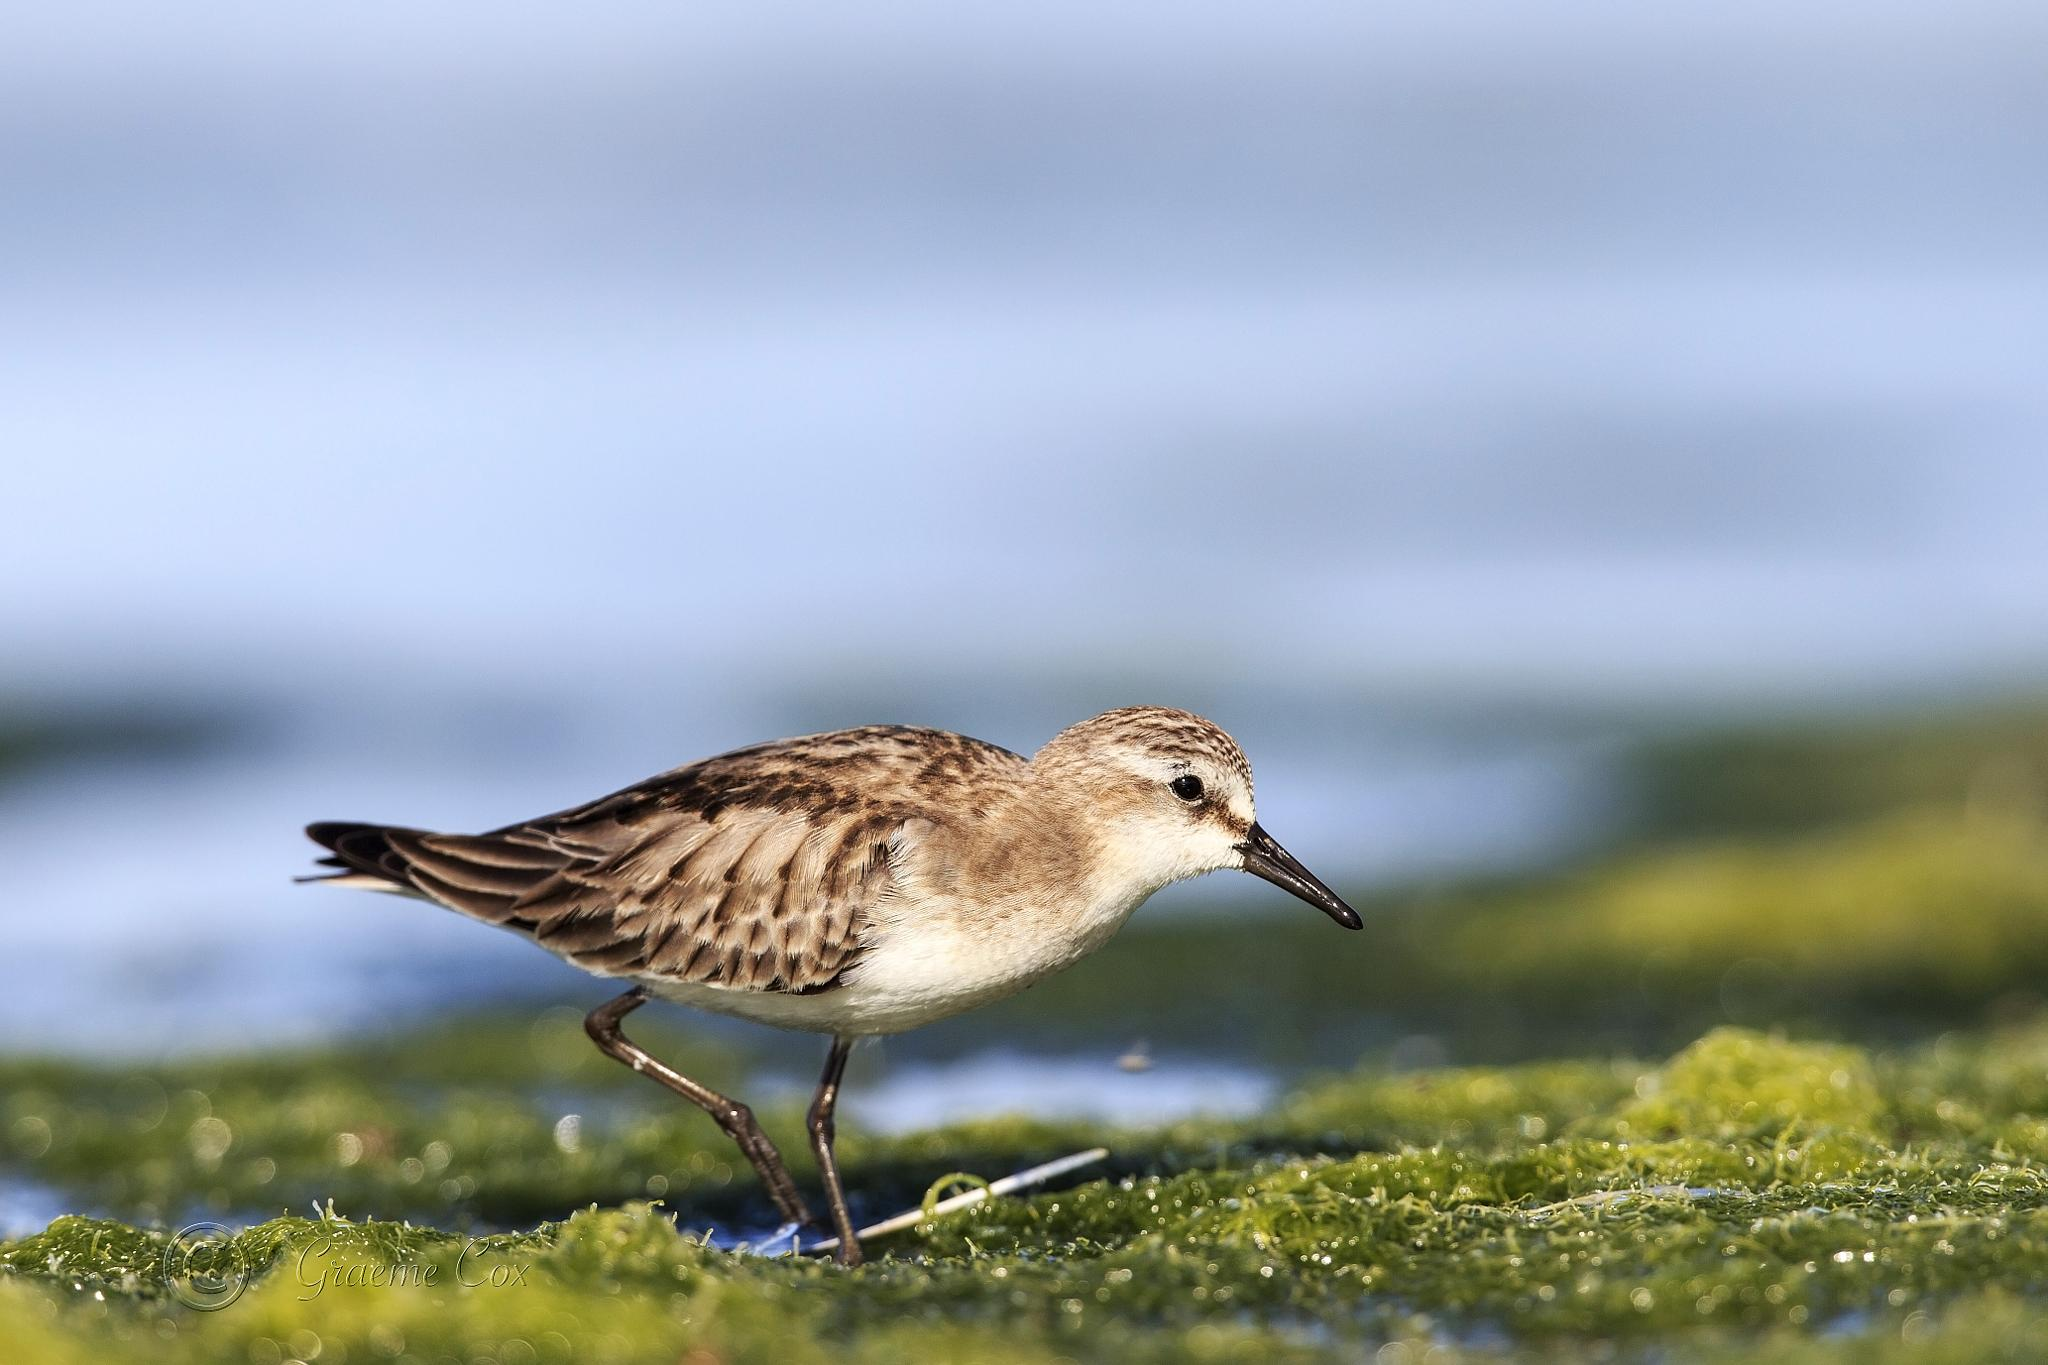 Red-necked stint by Graeme Cox